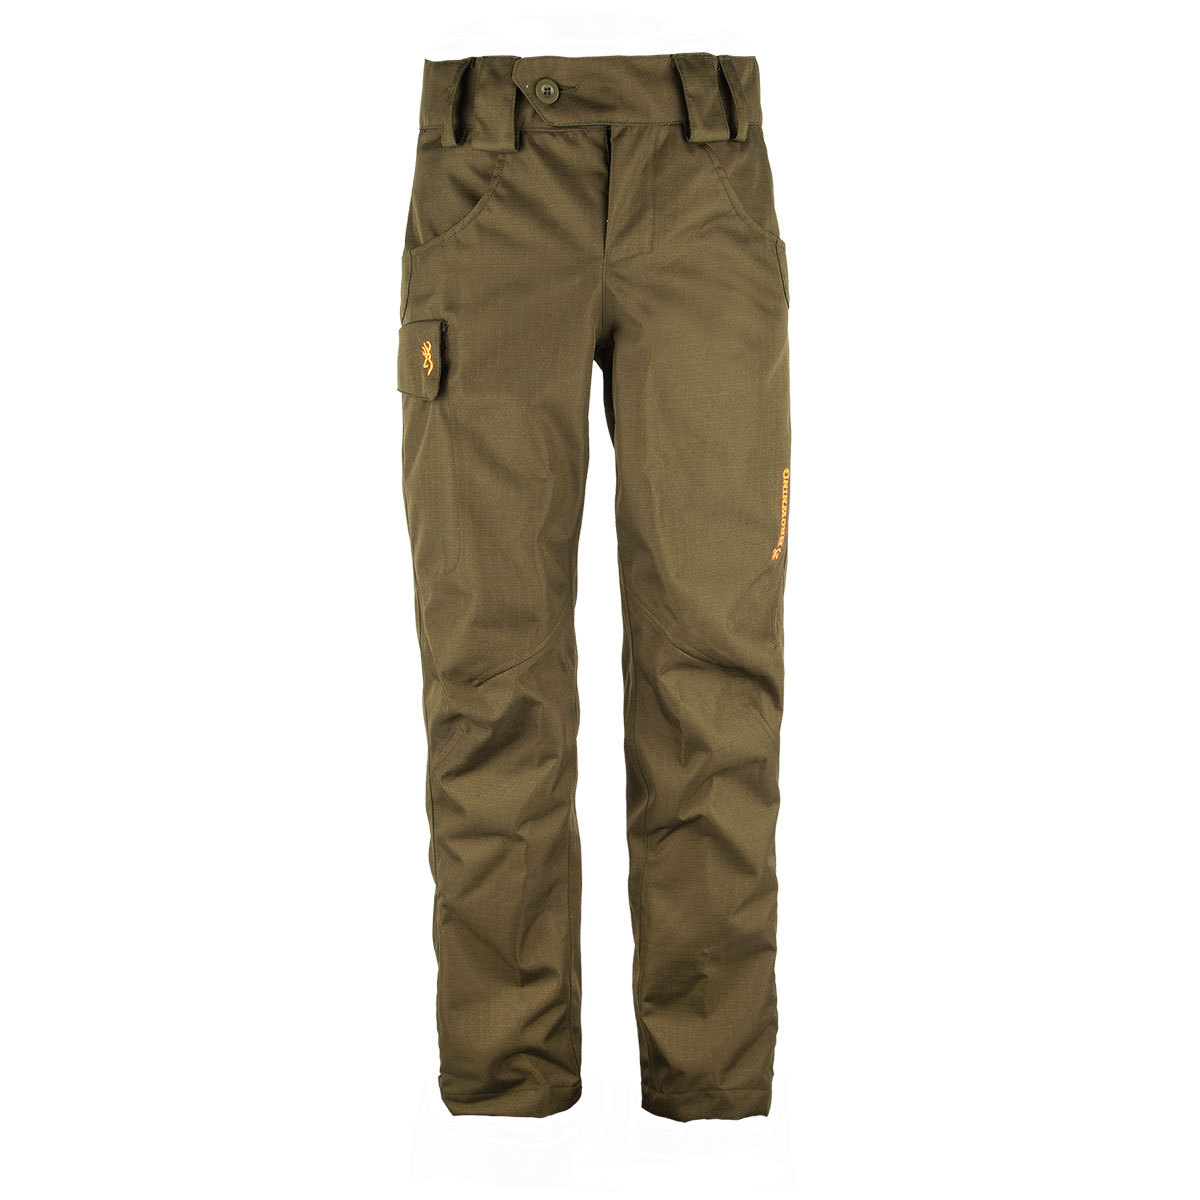 Browning Tracker One Hose Protect im Pareyshop